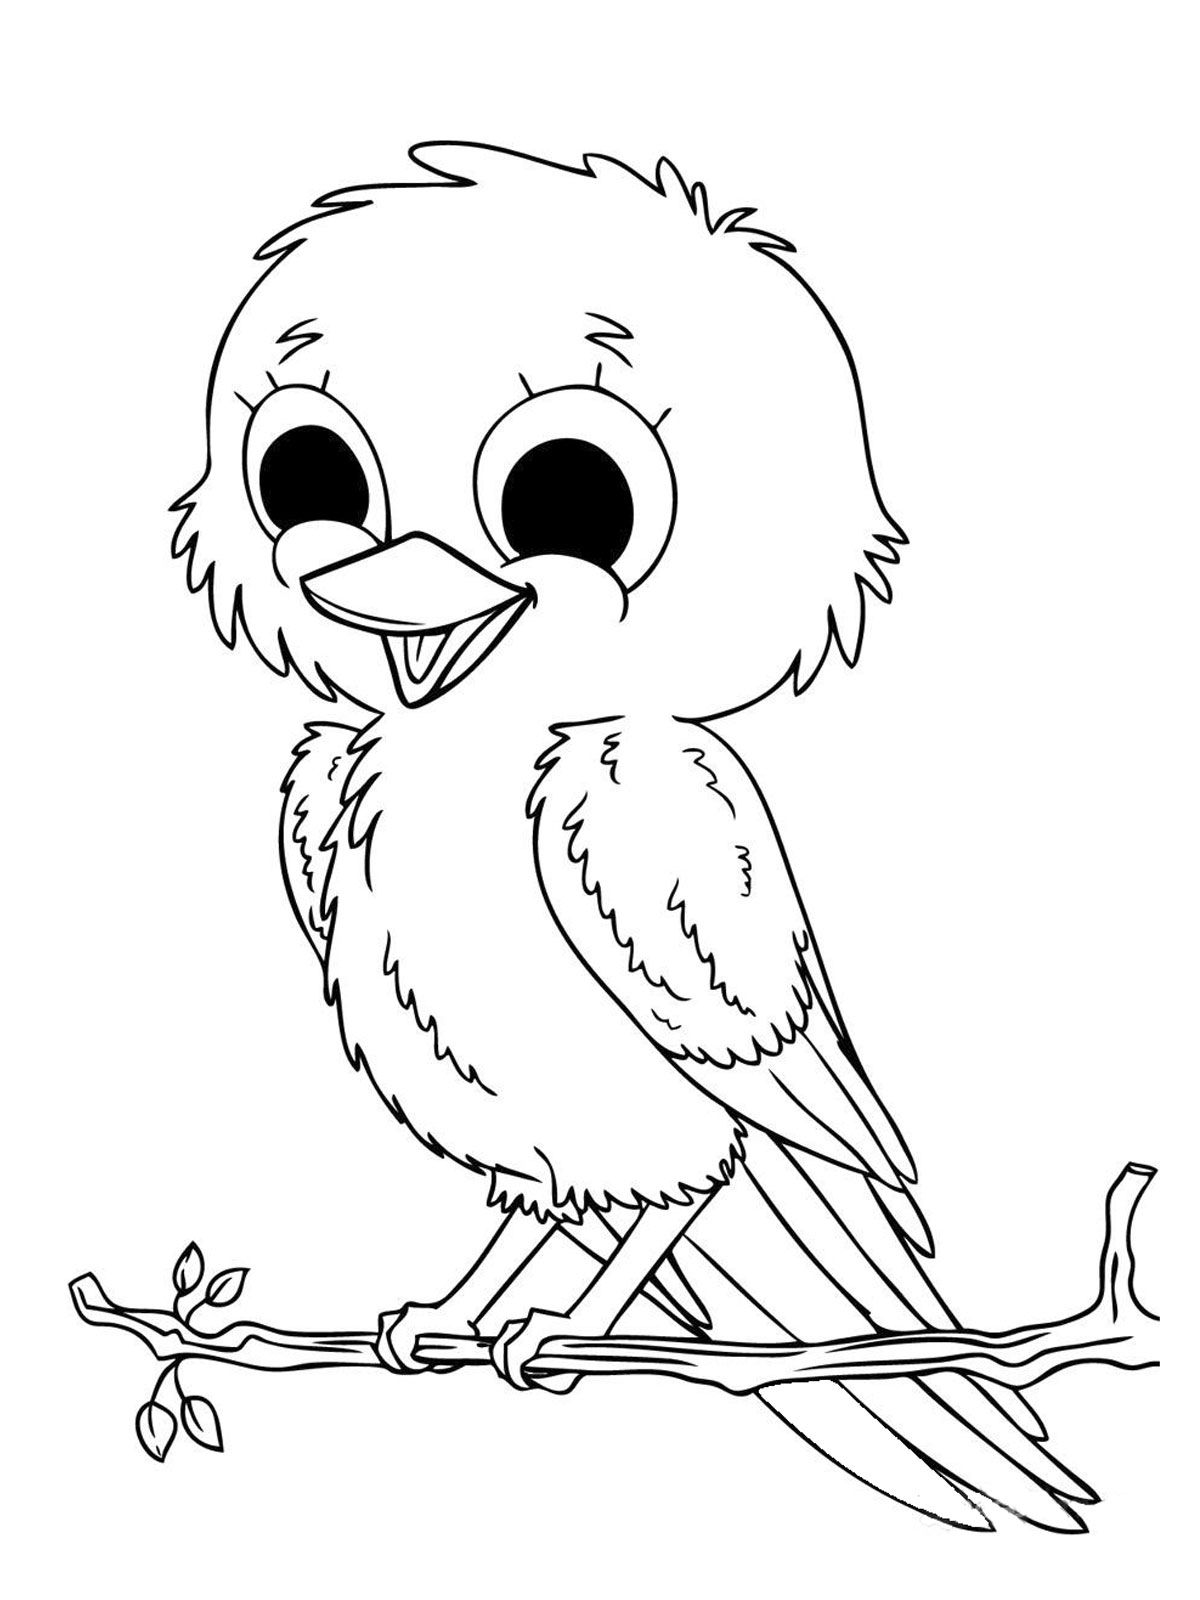 Free coloring pages download all baby animals coloring pages below including fawn young